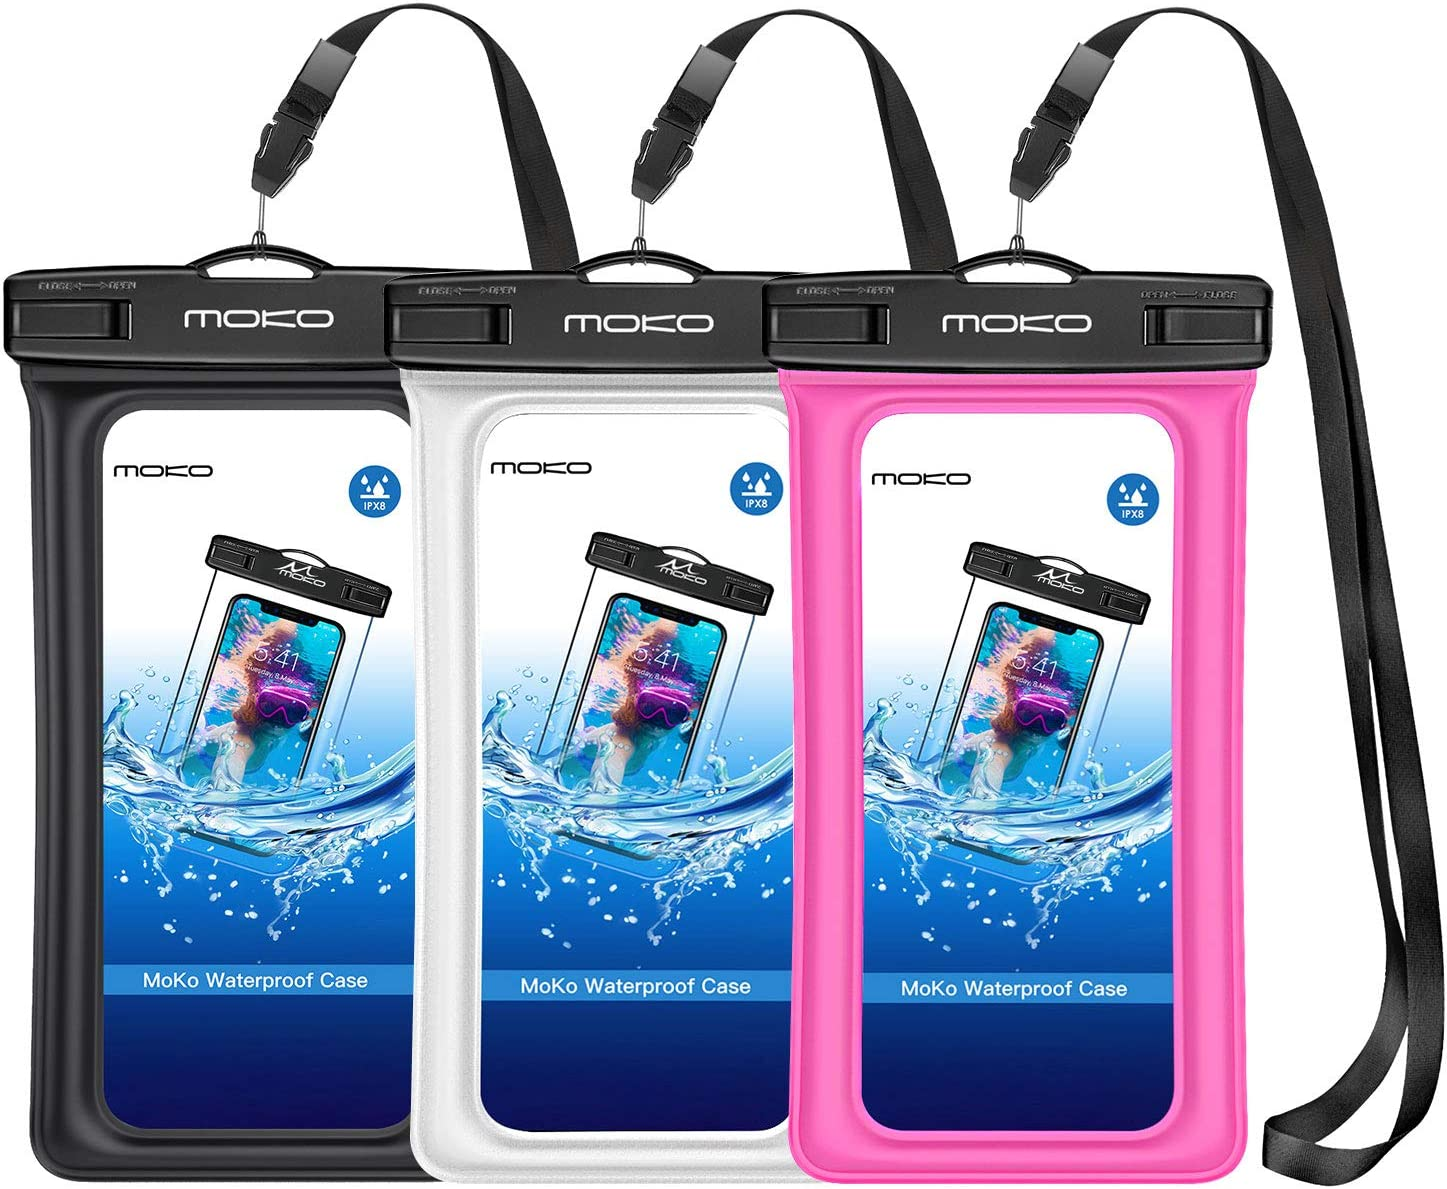 MoKo Floating Waterproof Phone Pouch [3 Pack], Floatable Phone Case Dry Bag with Lanyard Armband Compatible with iPhone 13/13 Pro Max/iPhone 12/12 Pro Max/11 Pro, X/Xr/Xs Max,8, Samsung S21/S10/S9